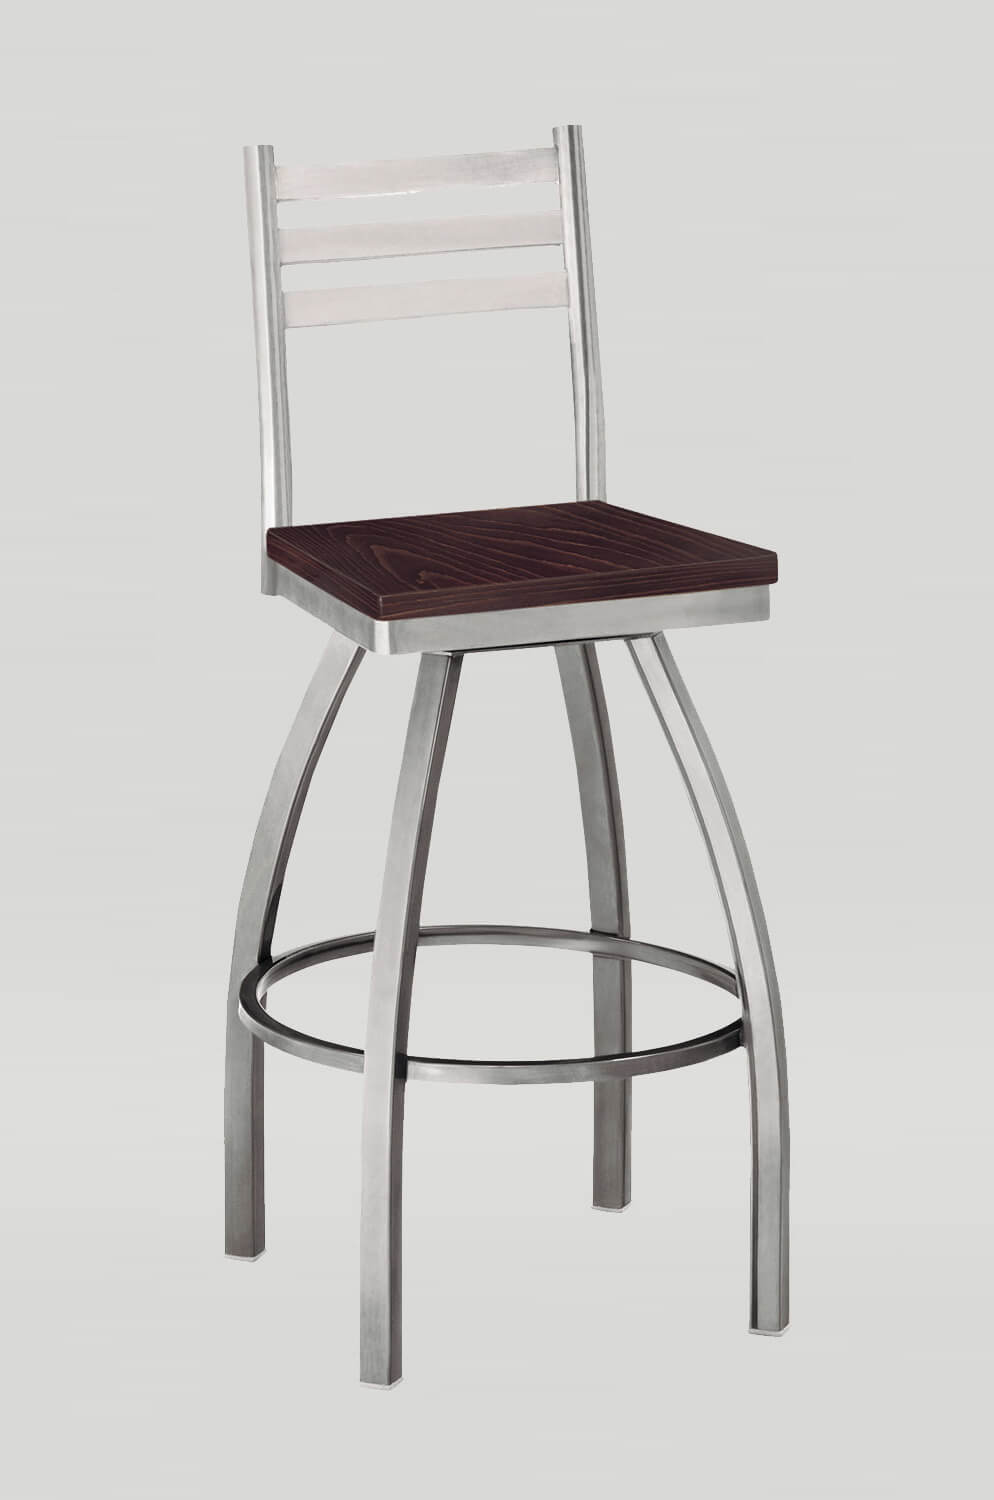 Grand Rapid's Ladder Back Swivel Tall Barstool with Metal Frame and Wood Seat - Commercial Grade